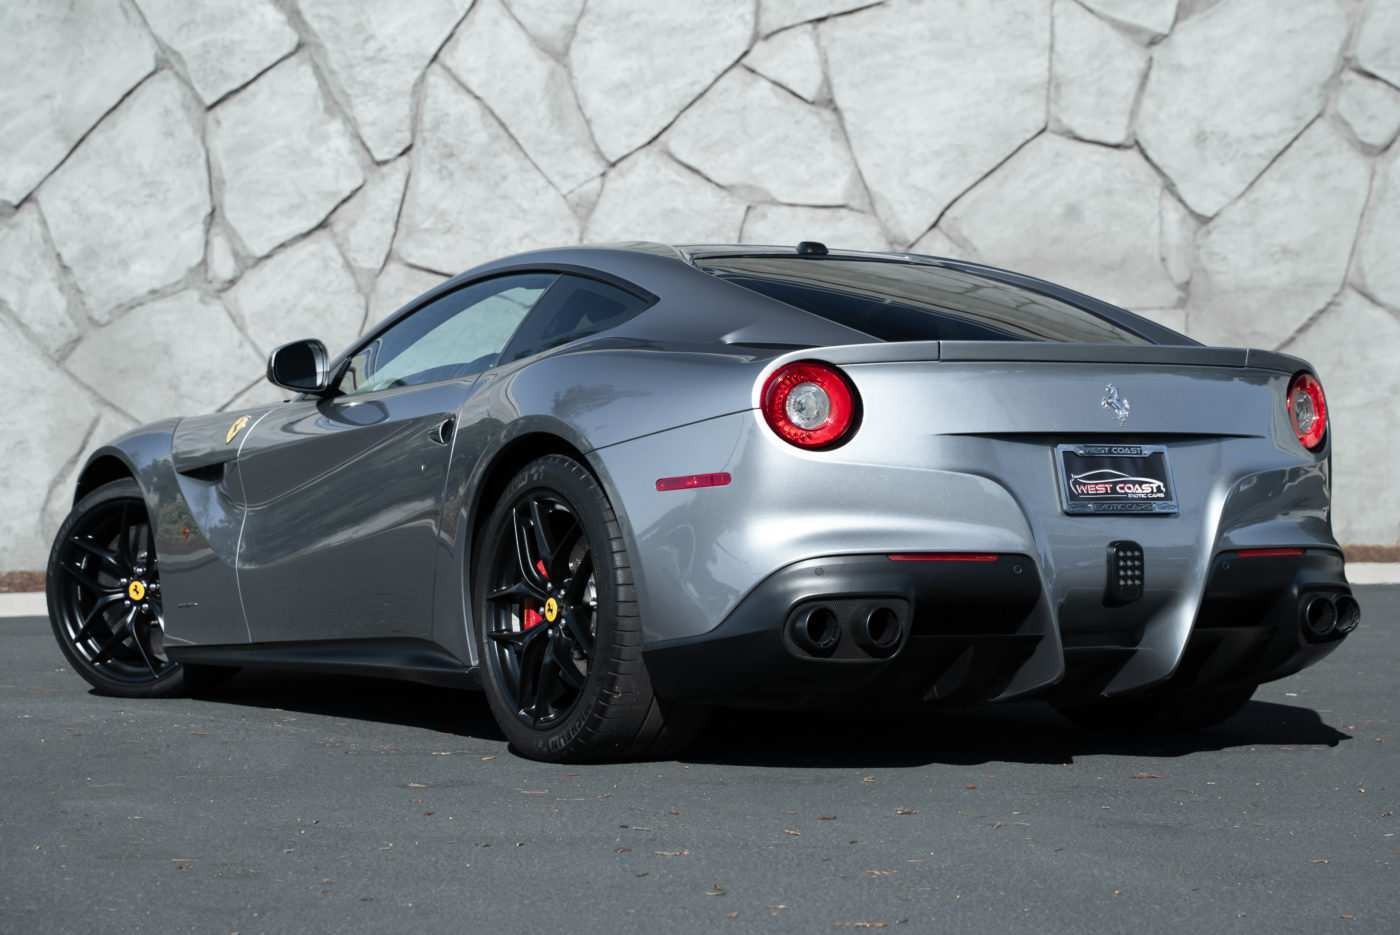 65 The Best 2019 Ferrari F12 Berlinetta Pricing